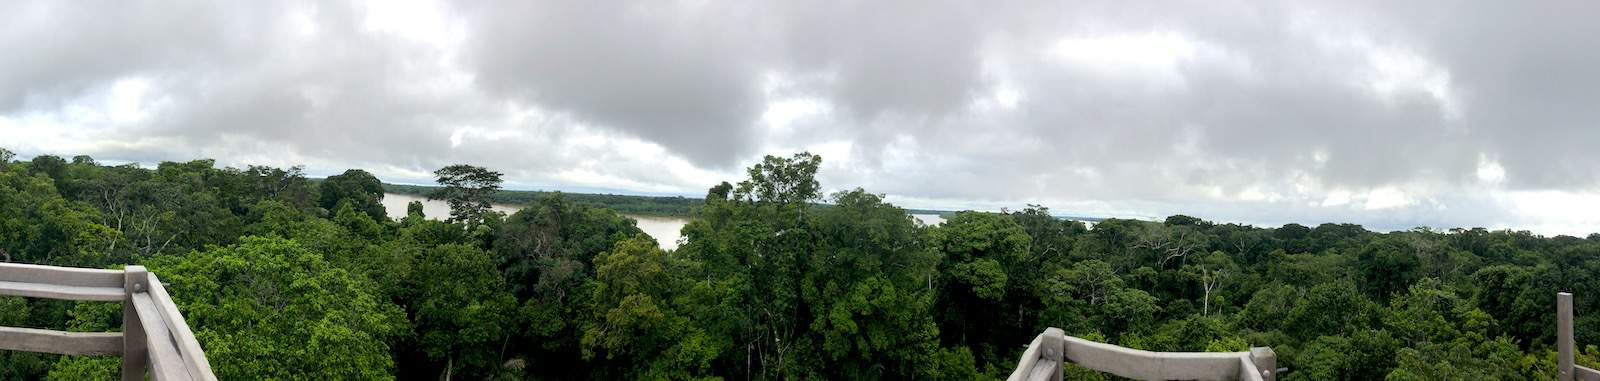 Tree top view of Peru Jungle